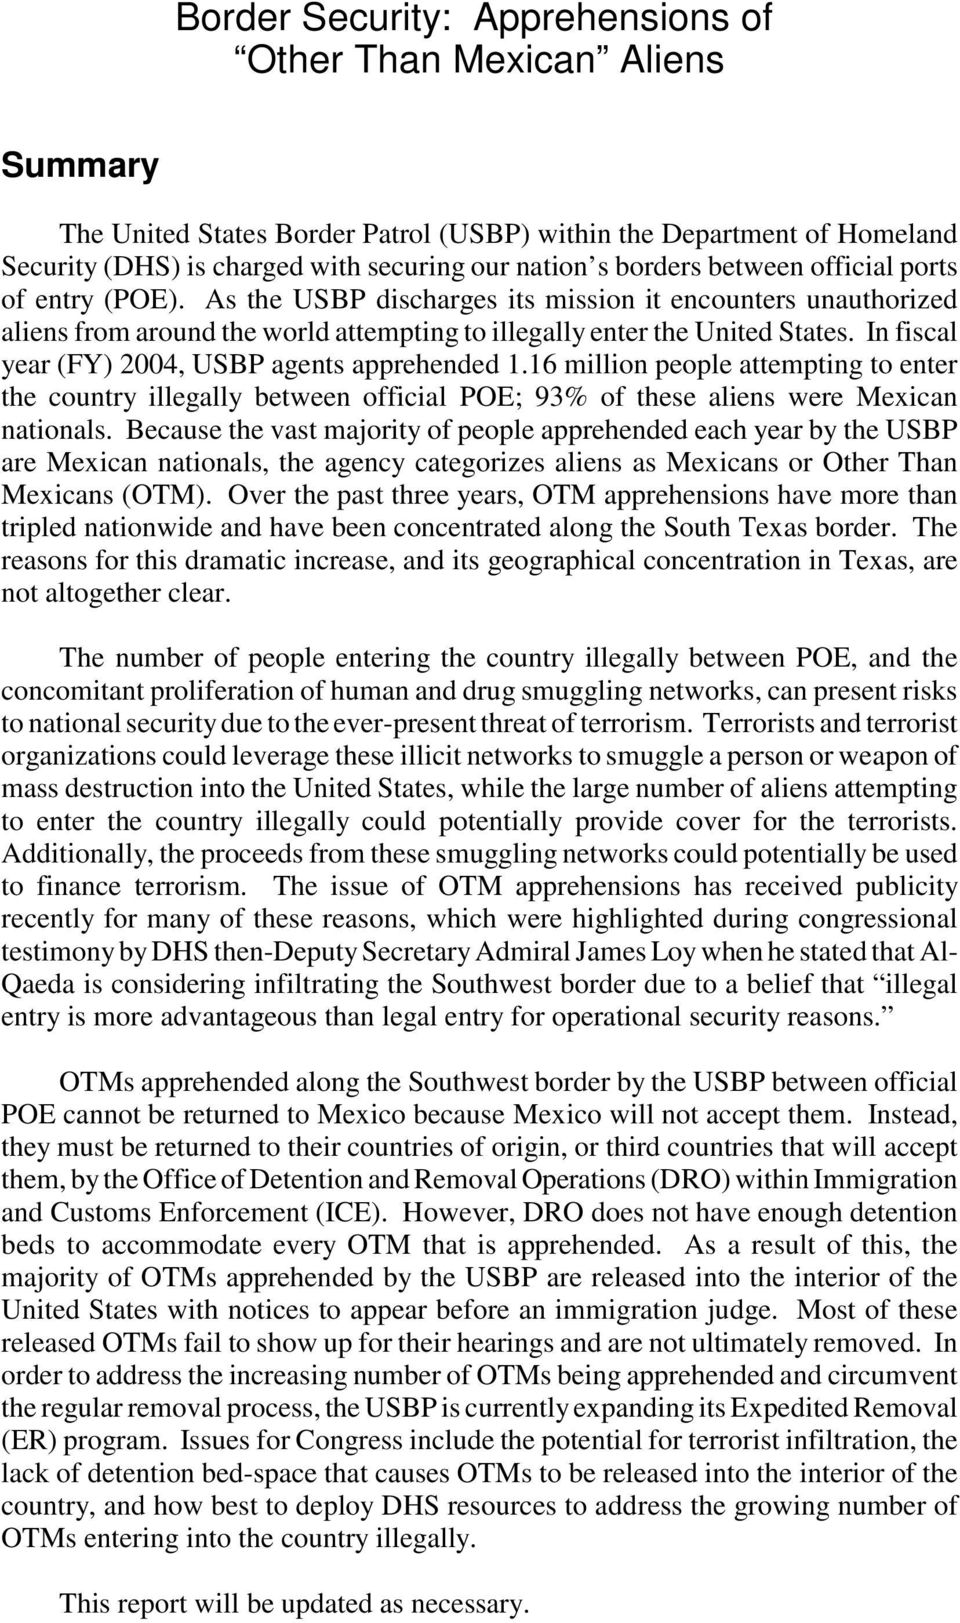 In fiscal year (FY) 2004, USBP agents apprehended 1.16 million people attempting to enter the country illegally between official POE; 93% of these aliens were Mexican nationals.